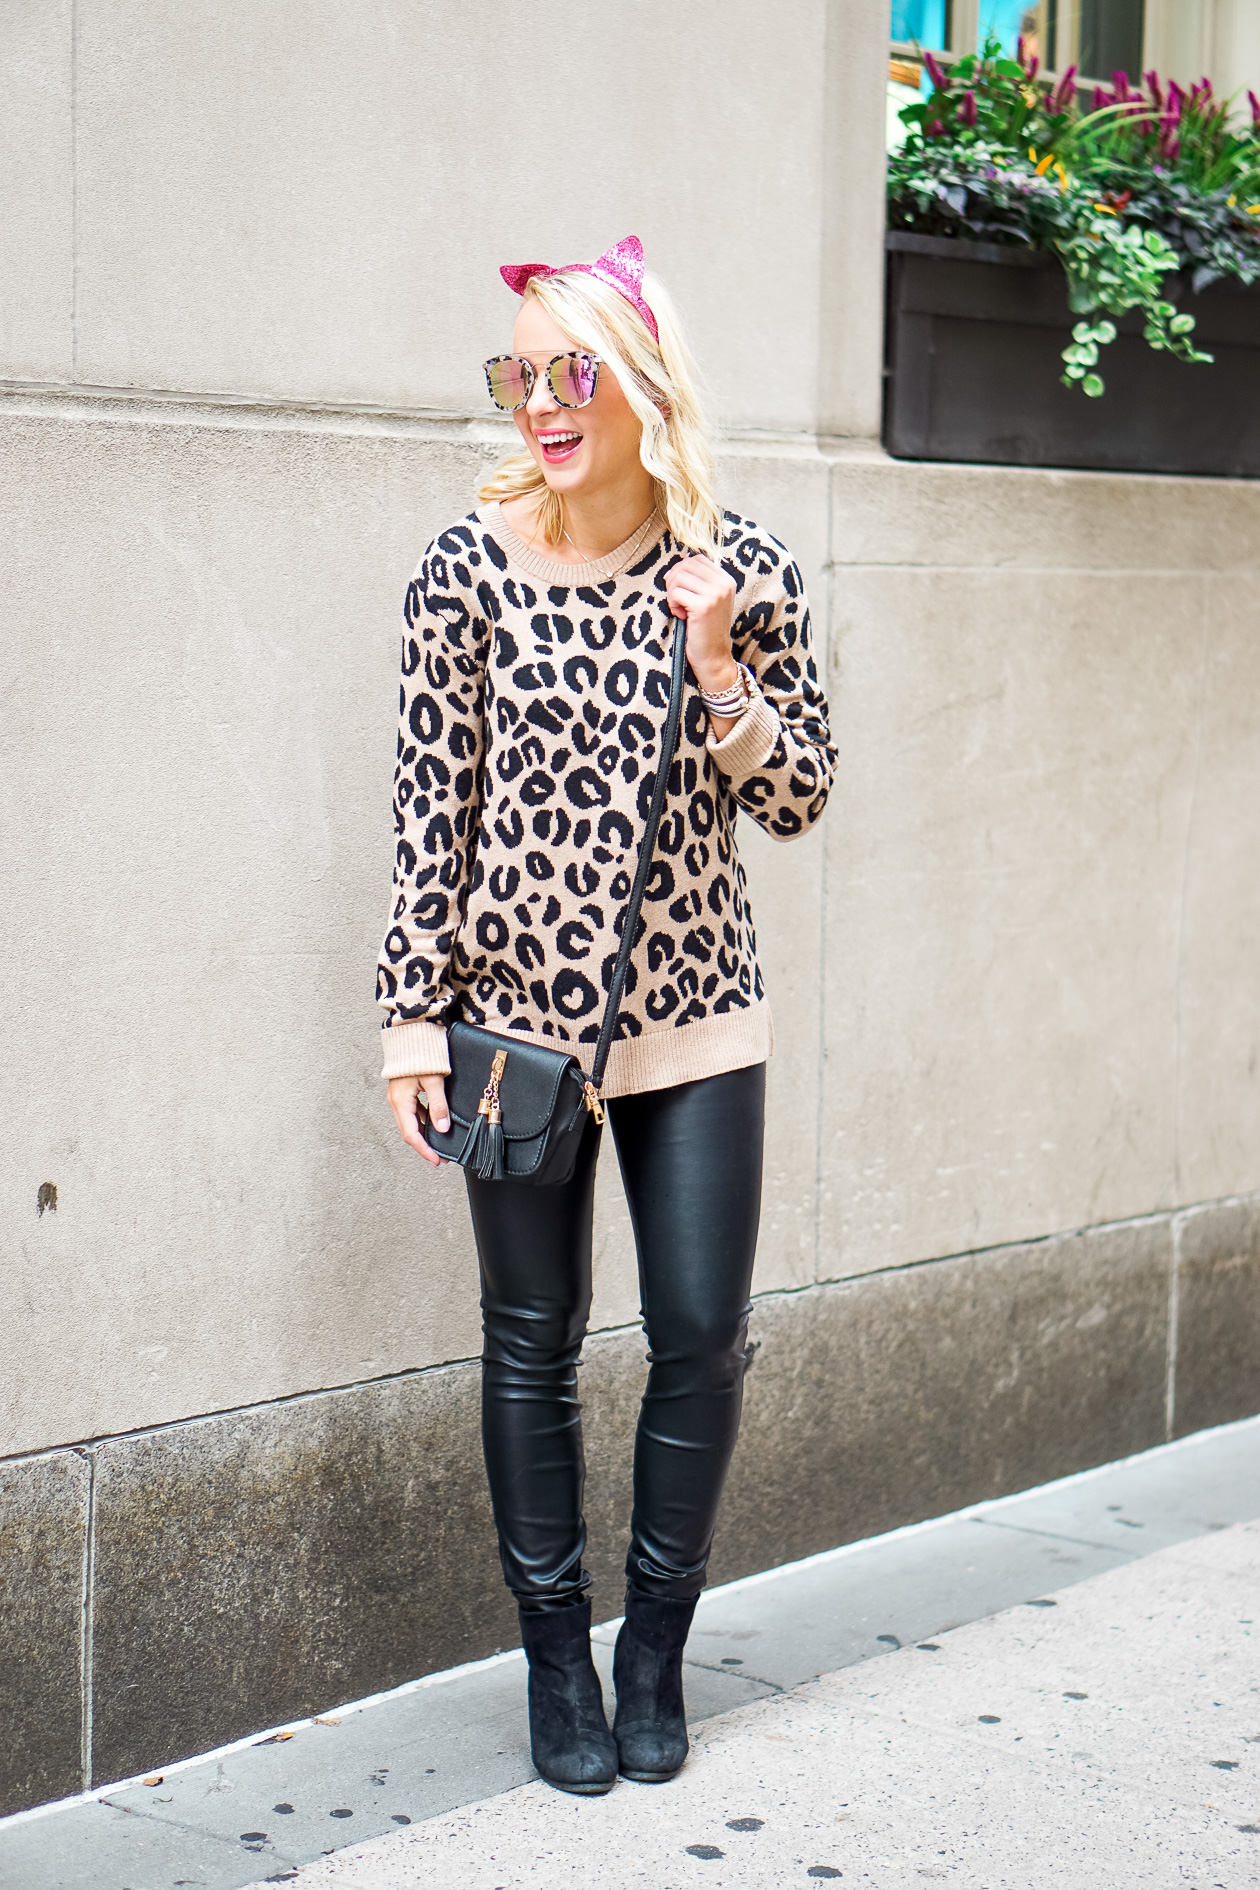 fd11be7afffe Leopard sweater and black faux leather pants with pink sequin cat headband